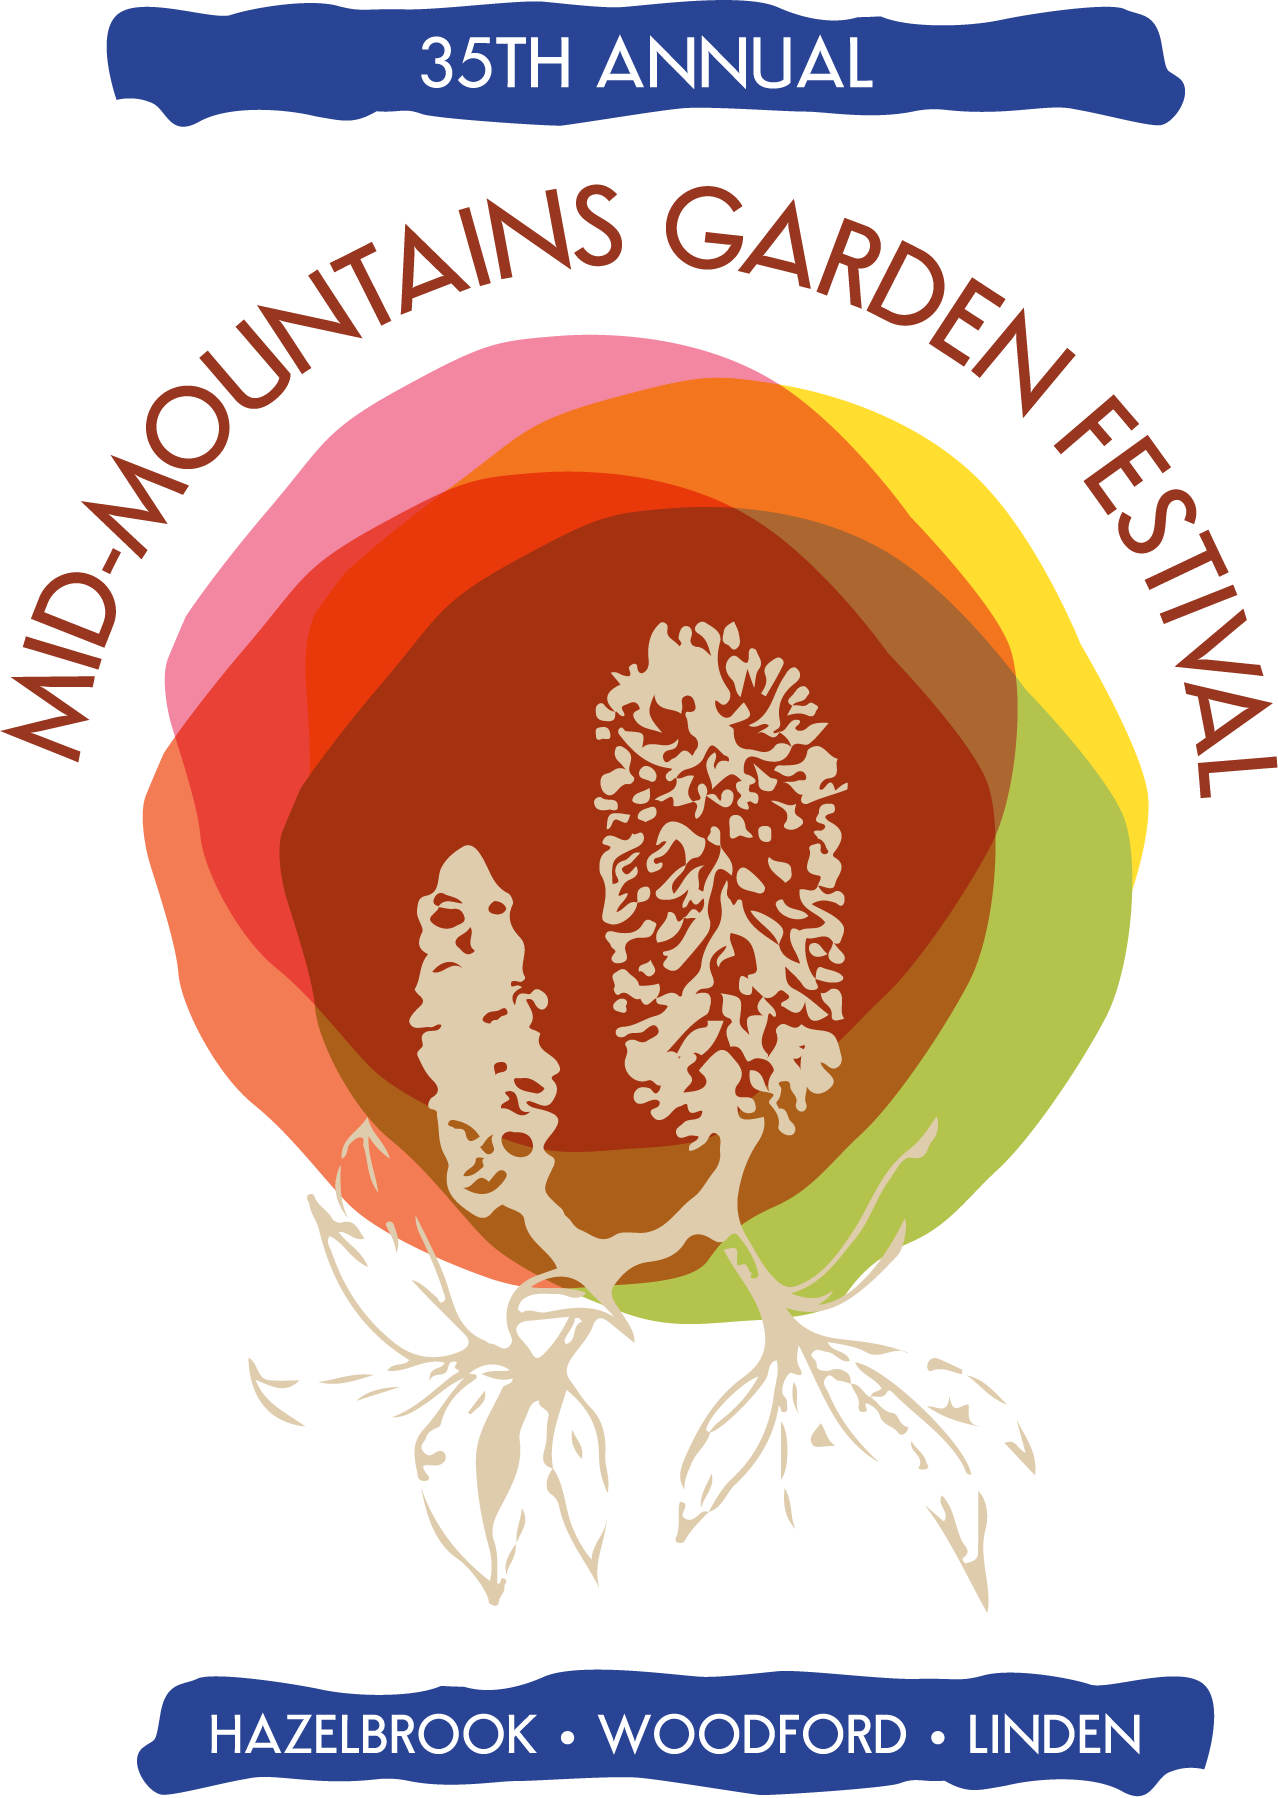 Mid-mountains Garden Festival Logo